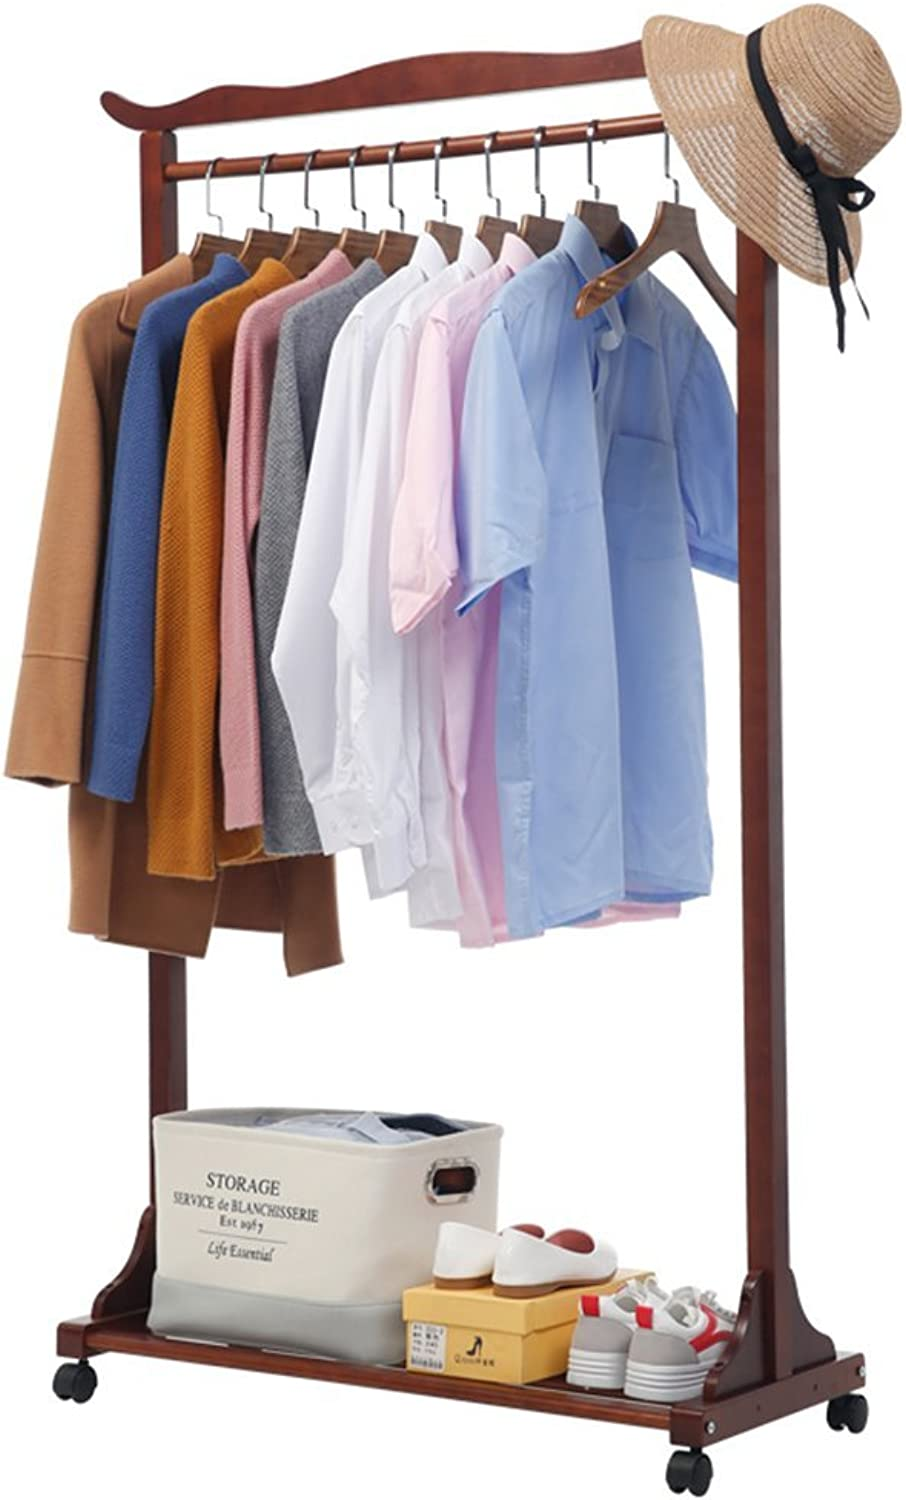 ZHIRONG Coat Rack Multifunction Floorstanding Solid Wood Hangers Mobile Clothing Rack shoes Rack Living Room Bedroom shoes Rack 67.538159cm   87.538159cm ( color   BROWN , Size   67.538159cm )